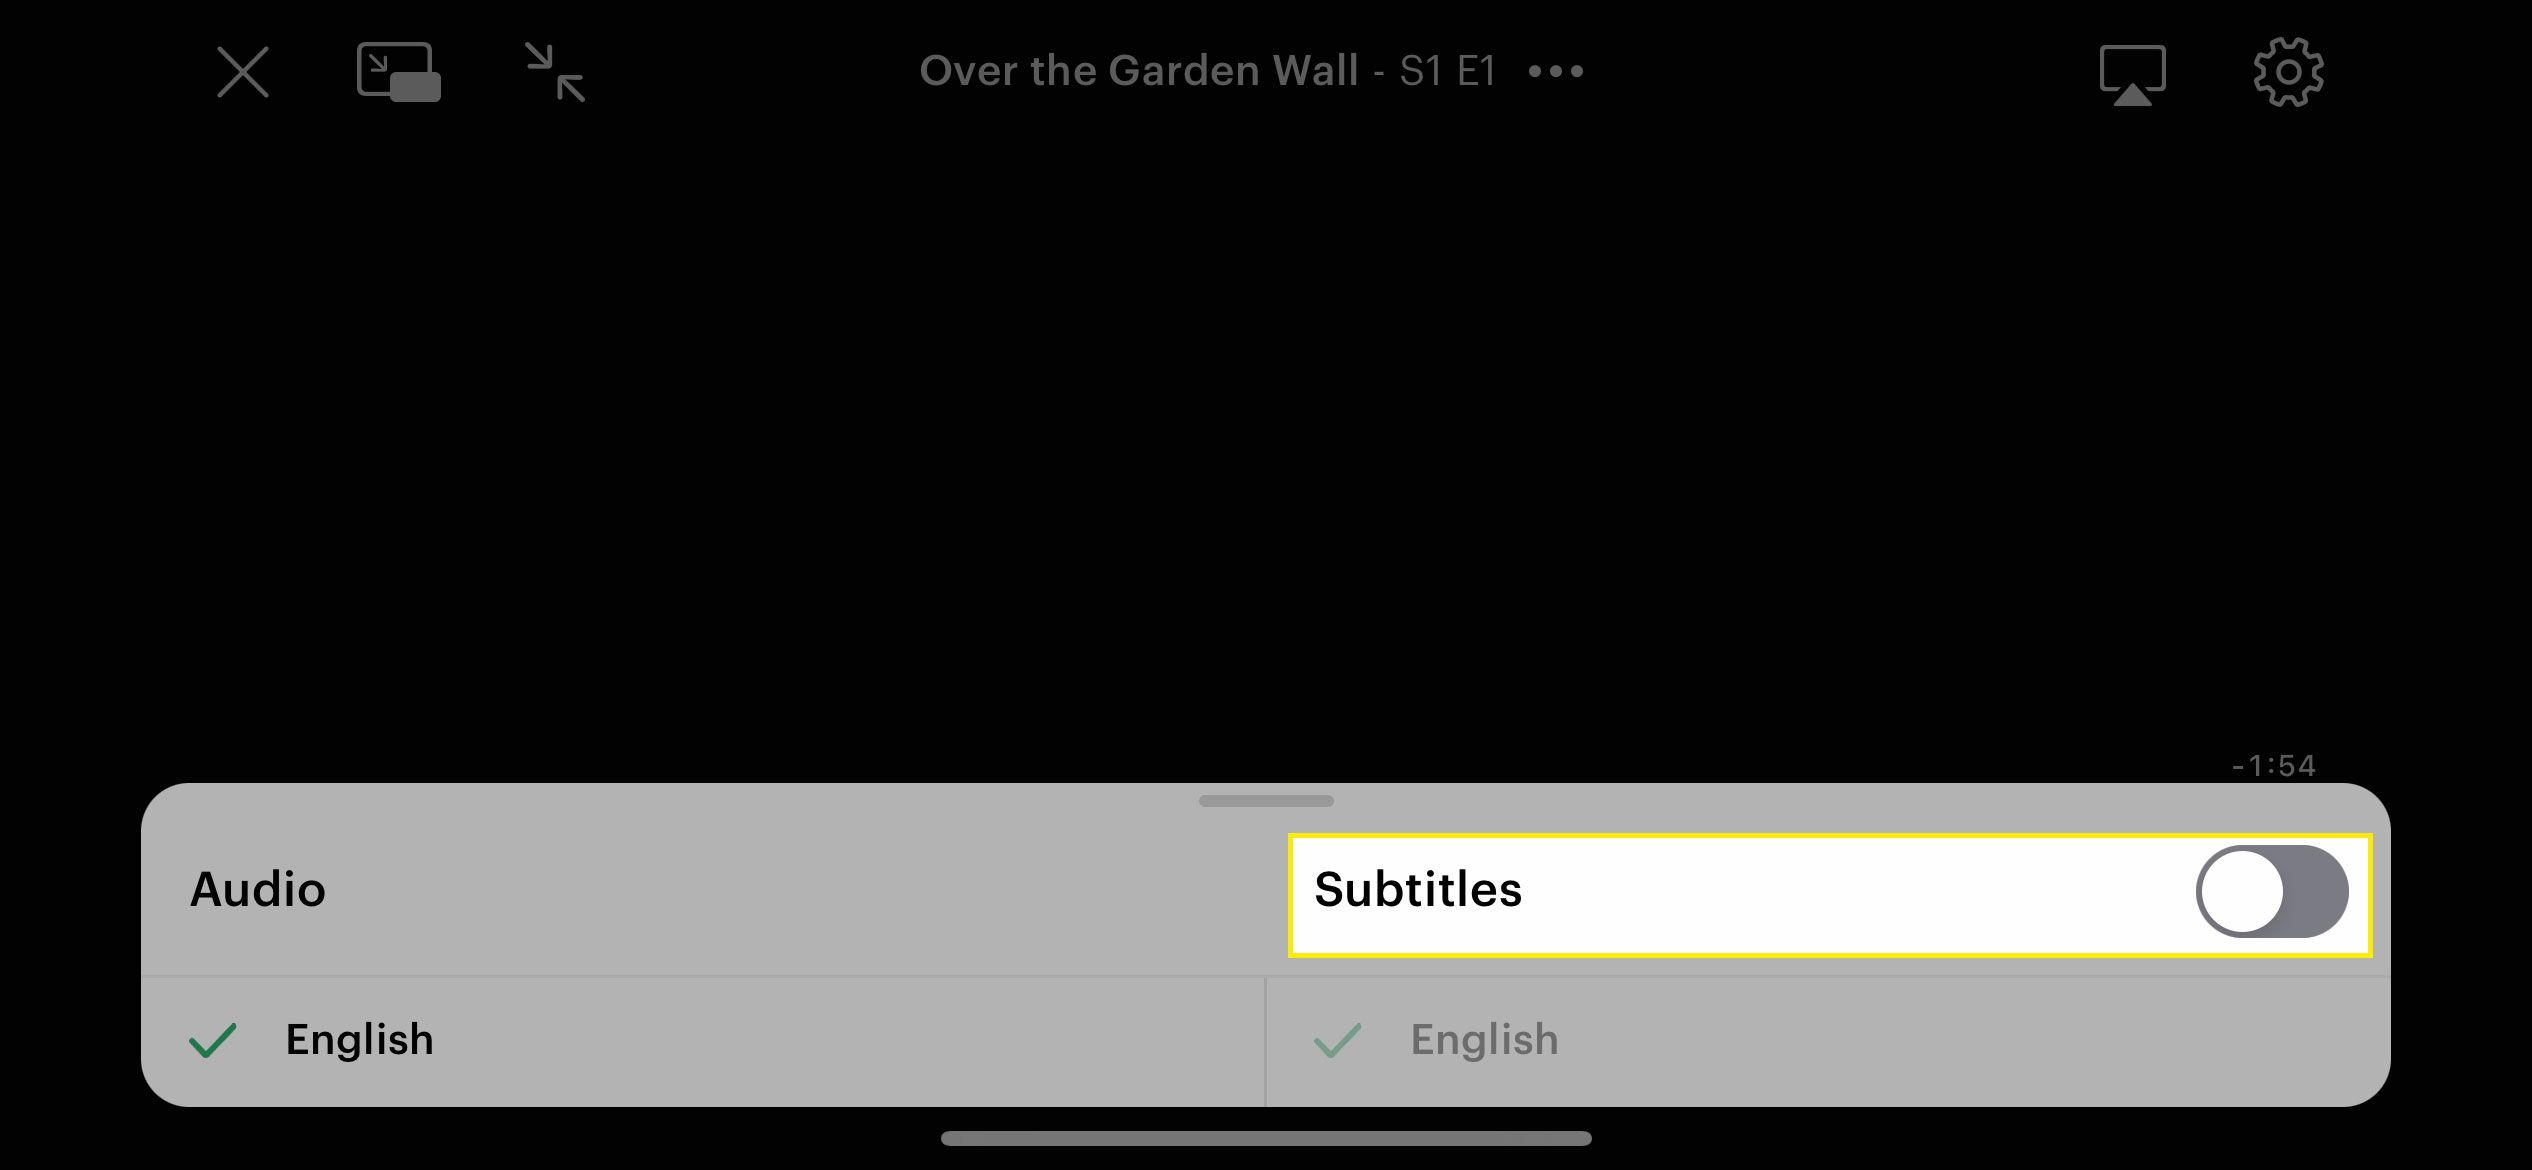 The Subtitles switch in the Hulu app for iOS